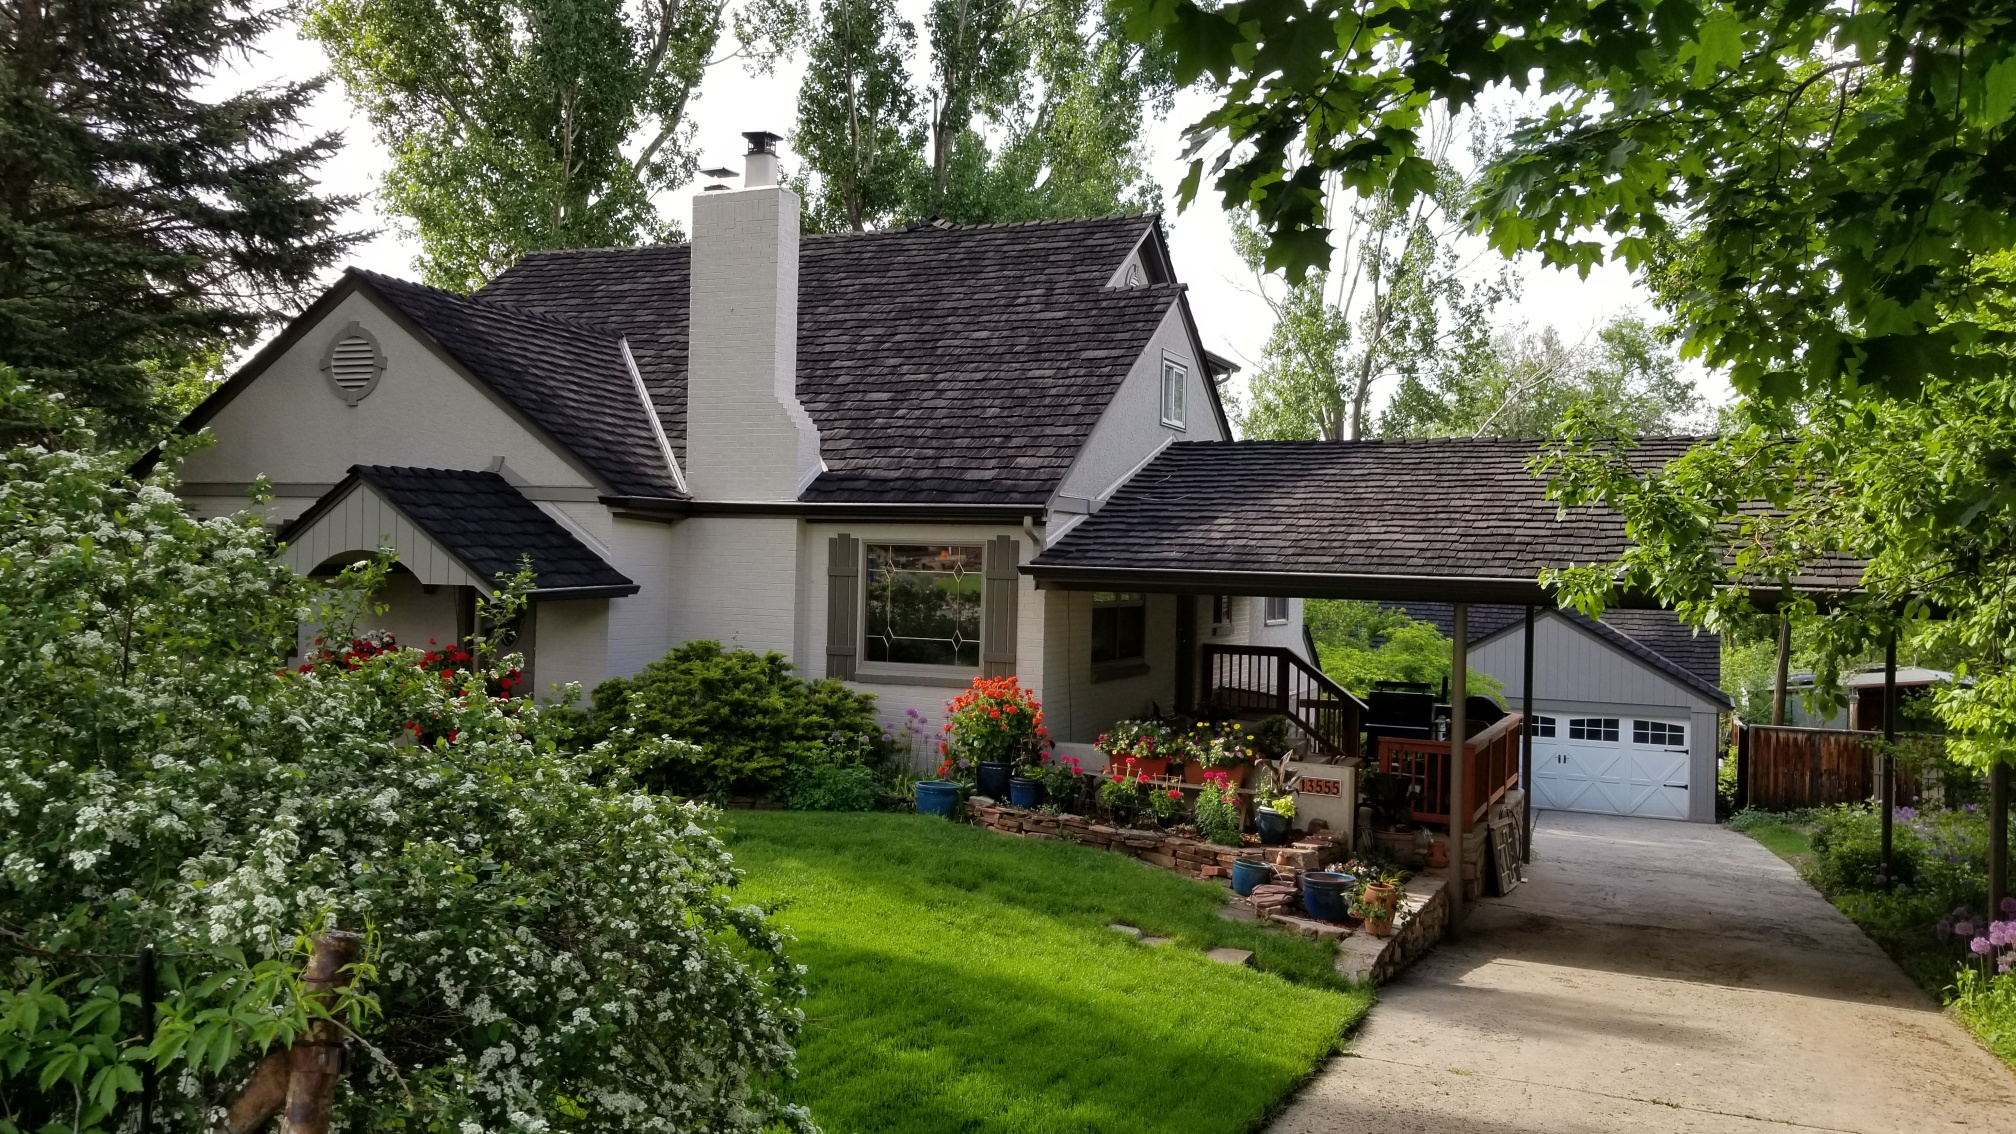 beauitful-home-in-denver-colorado-with-cedur-shiloh-roofing-material.jpg